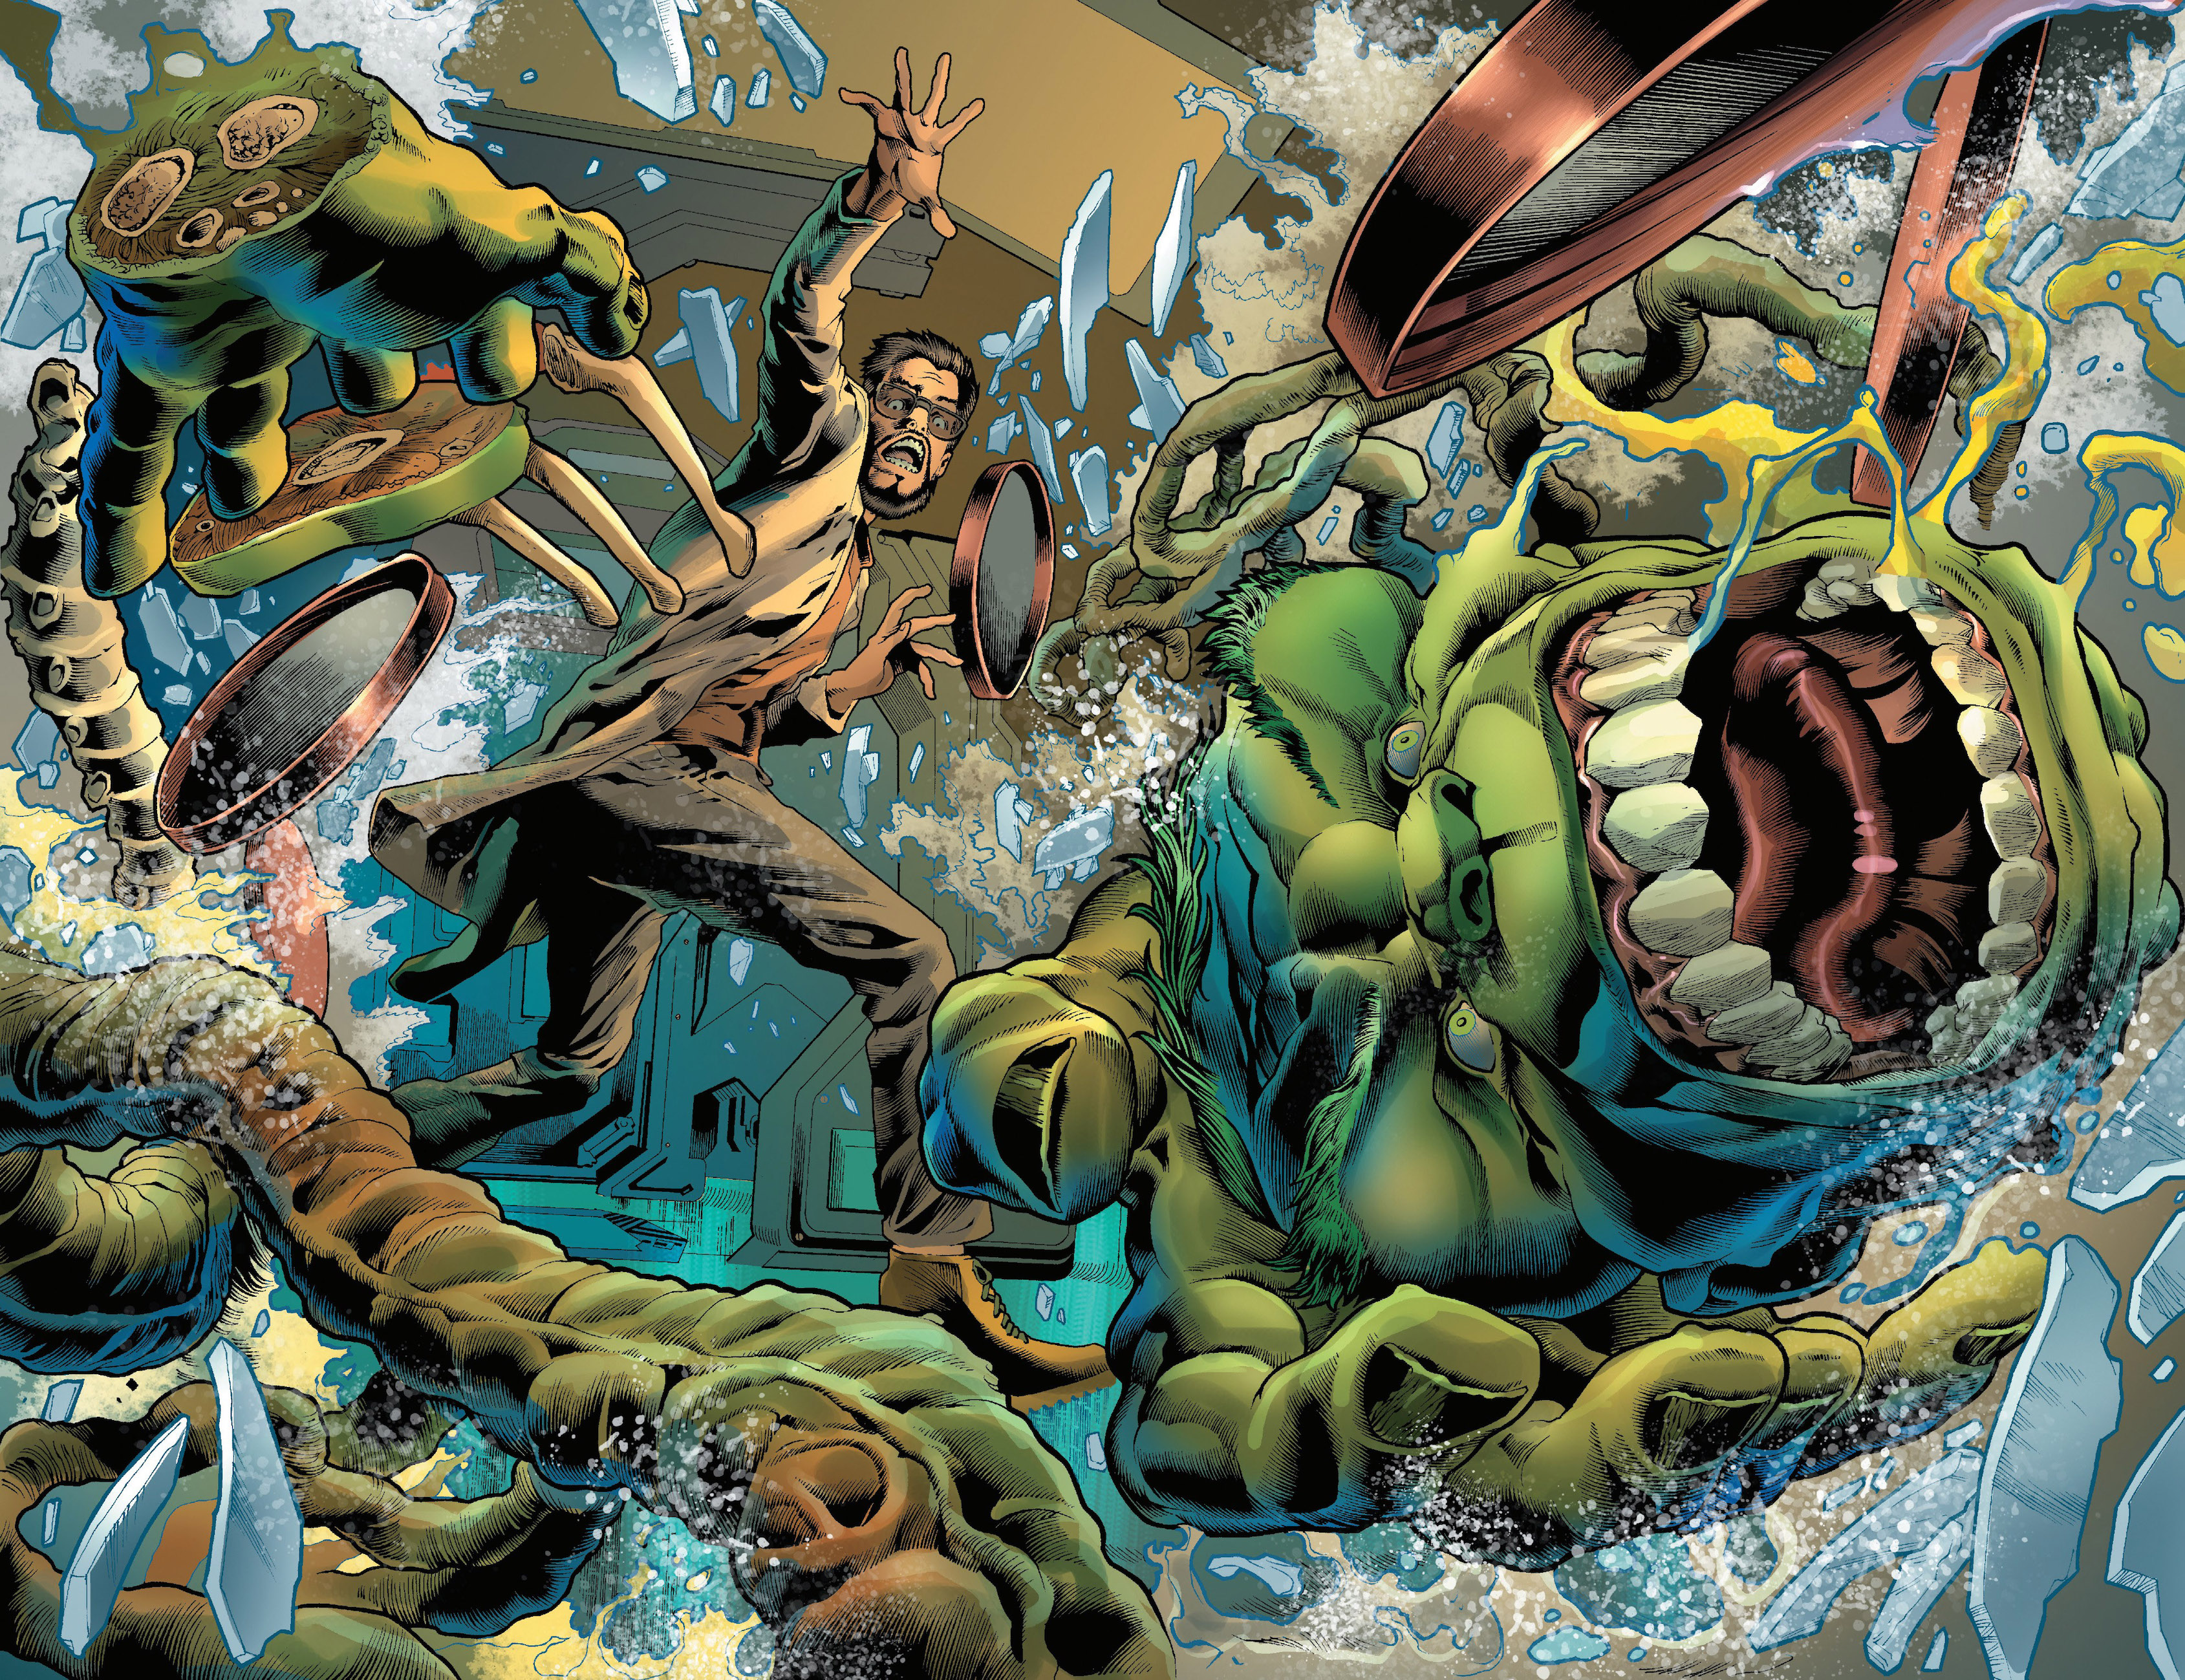 This is an image of Nerdy A Picture of the Hulk